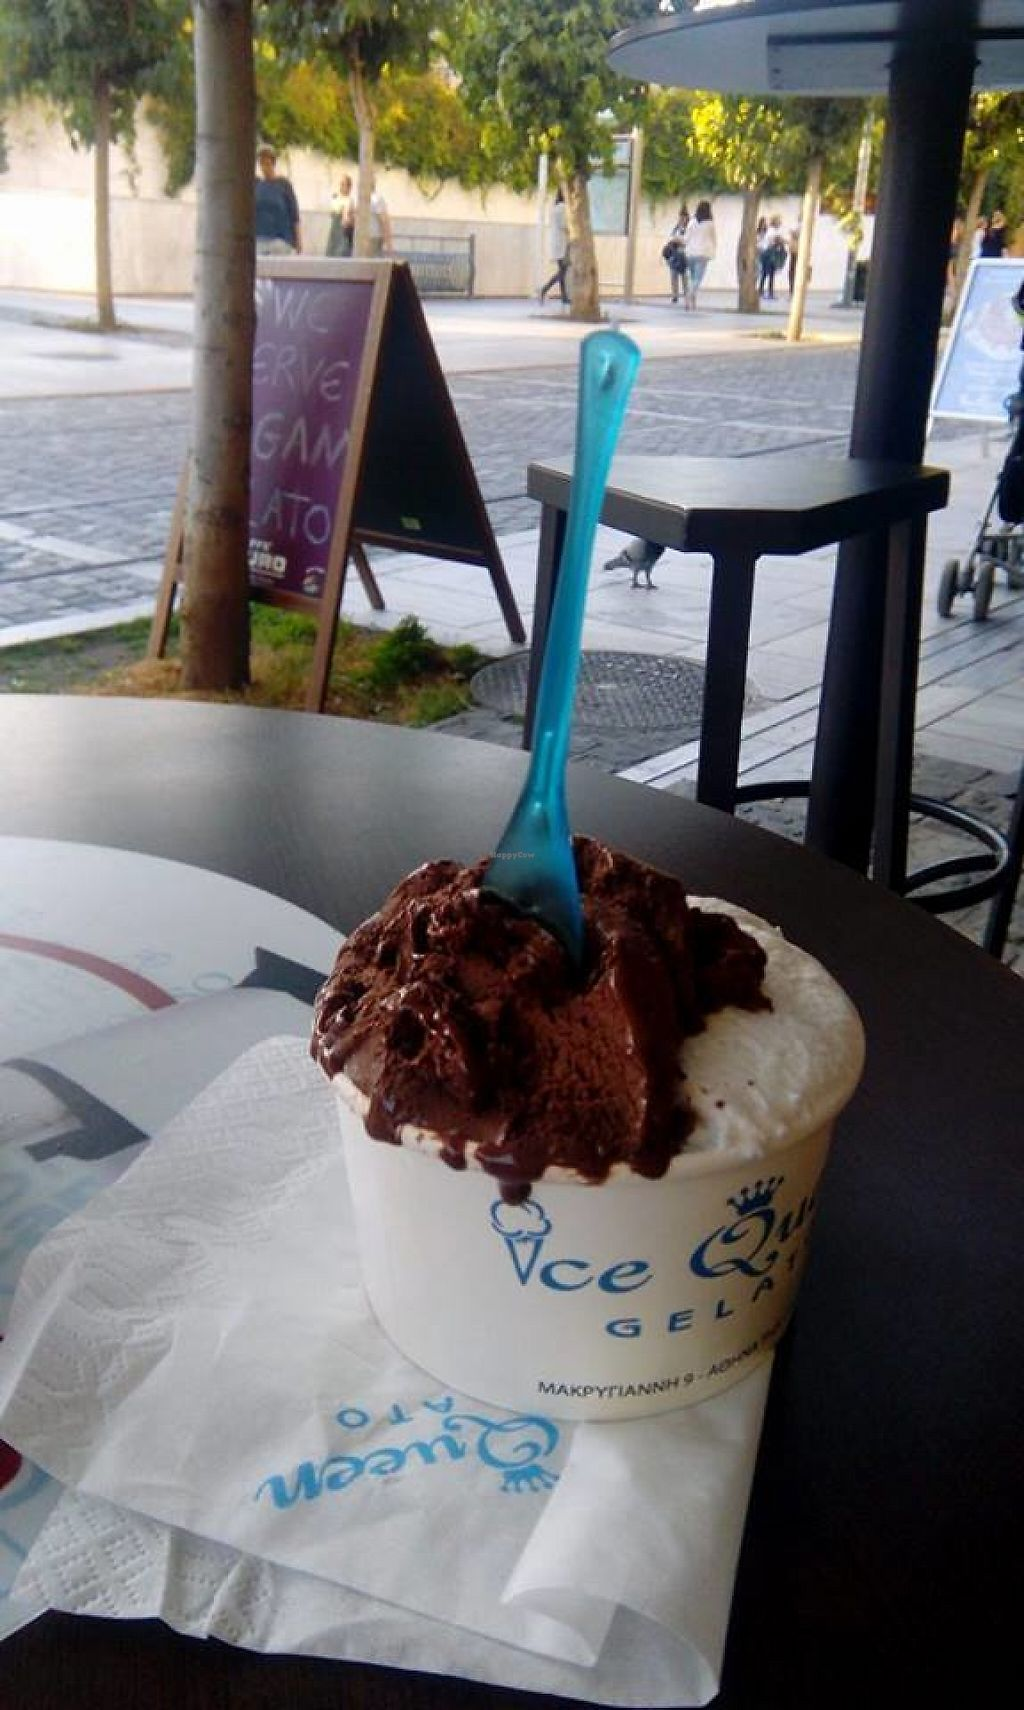 """Photo of Ice Queen Gelato  by <a href=""""/members/profile/TytoAlba"""">TytoAlba</a> <br/>vegan ice cream <br/> May 7, 2017  - <a href='/contact/abuse/image/45730/256864'>Report</a>"""